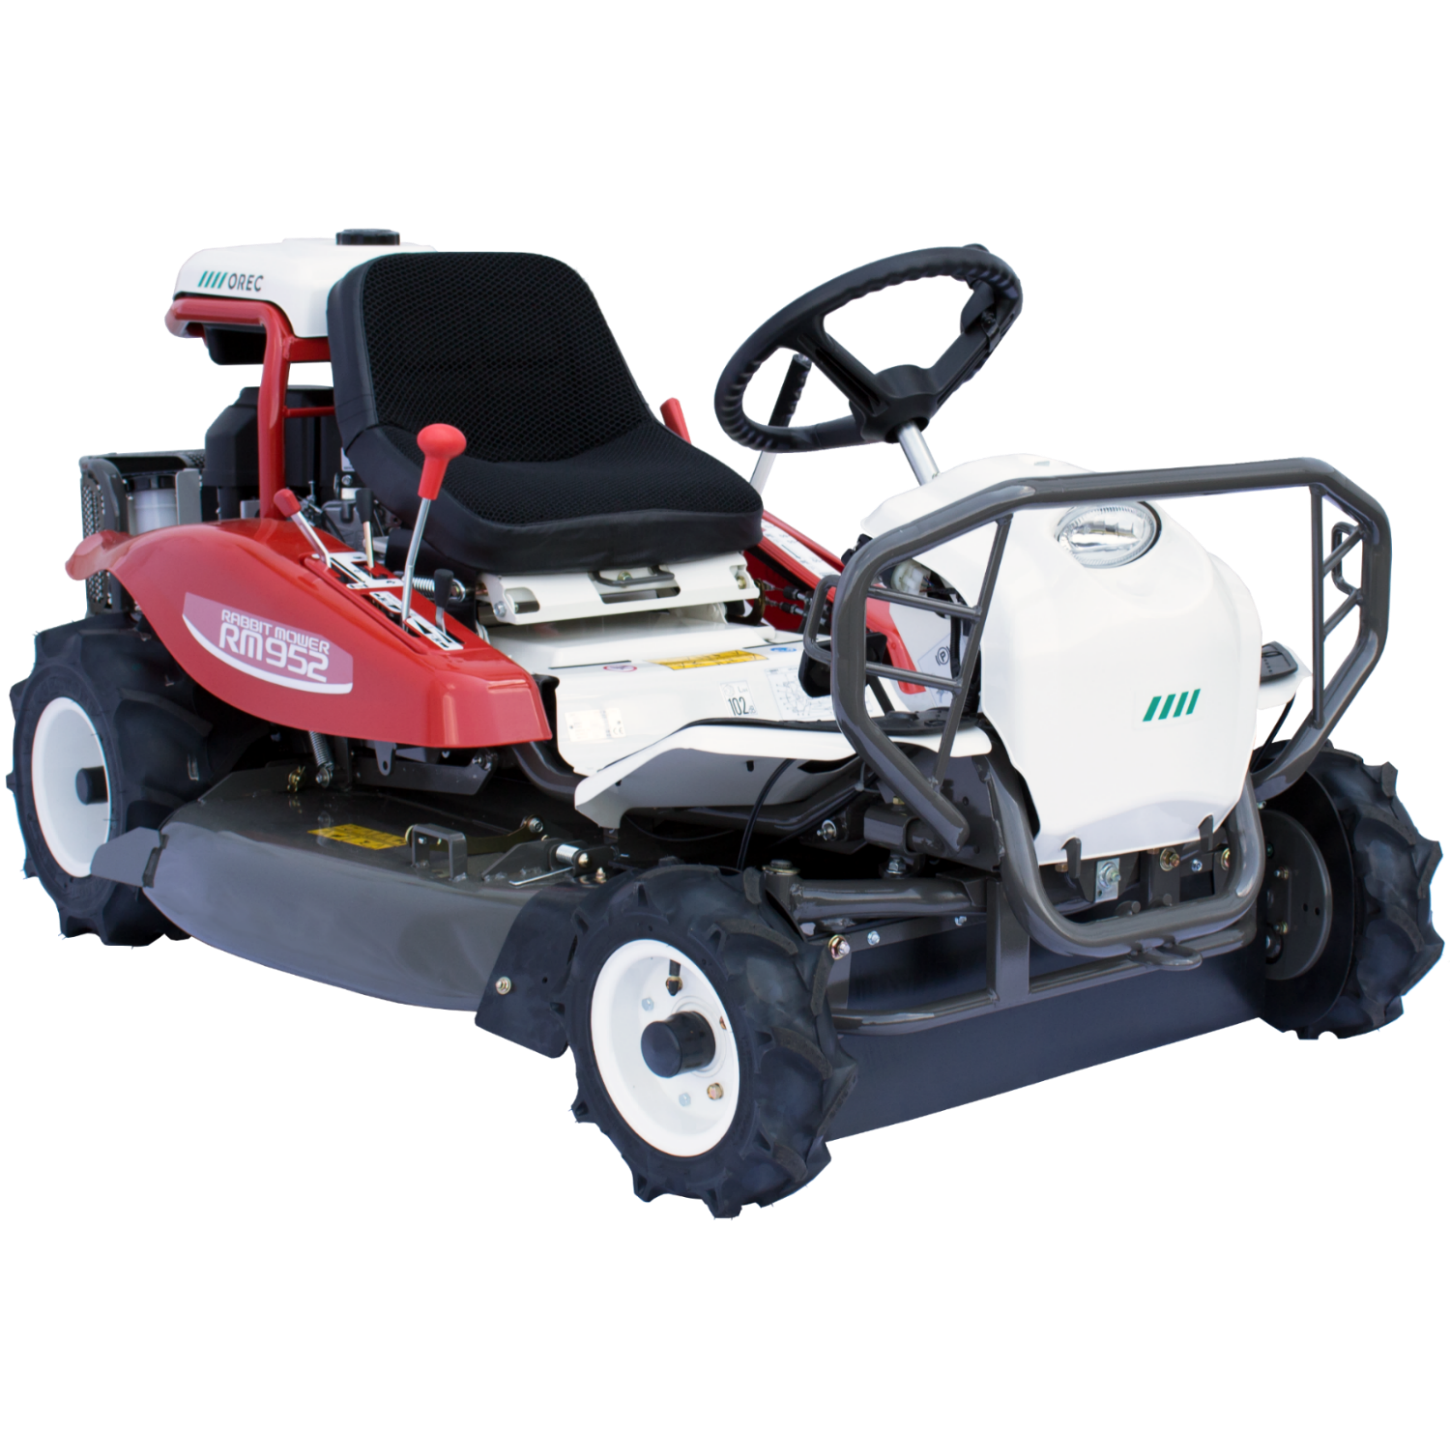 Orec Rabbit RM952 Ride-On Brushcutter